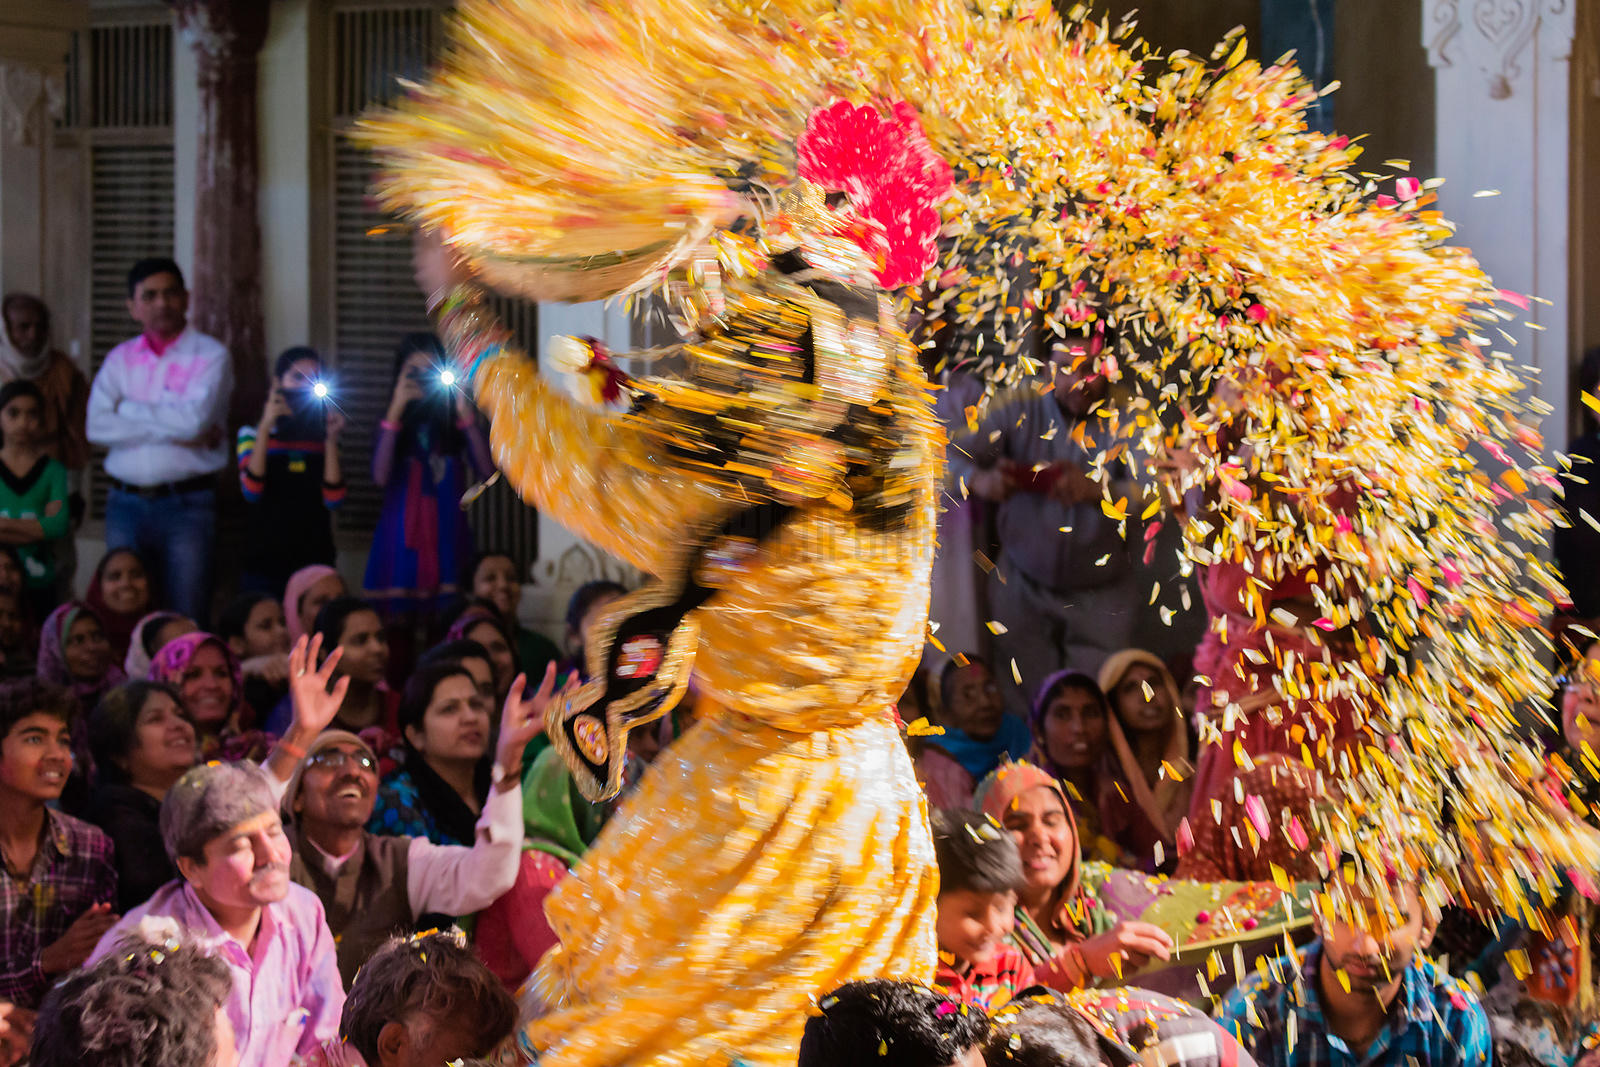 Reveller Throwing a basket of Petals at a Holi Celebration